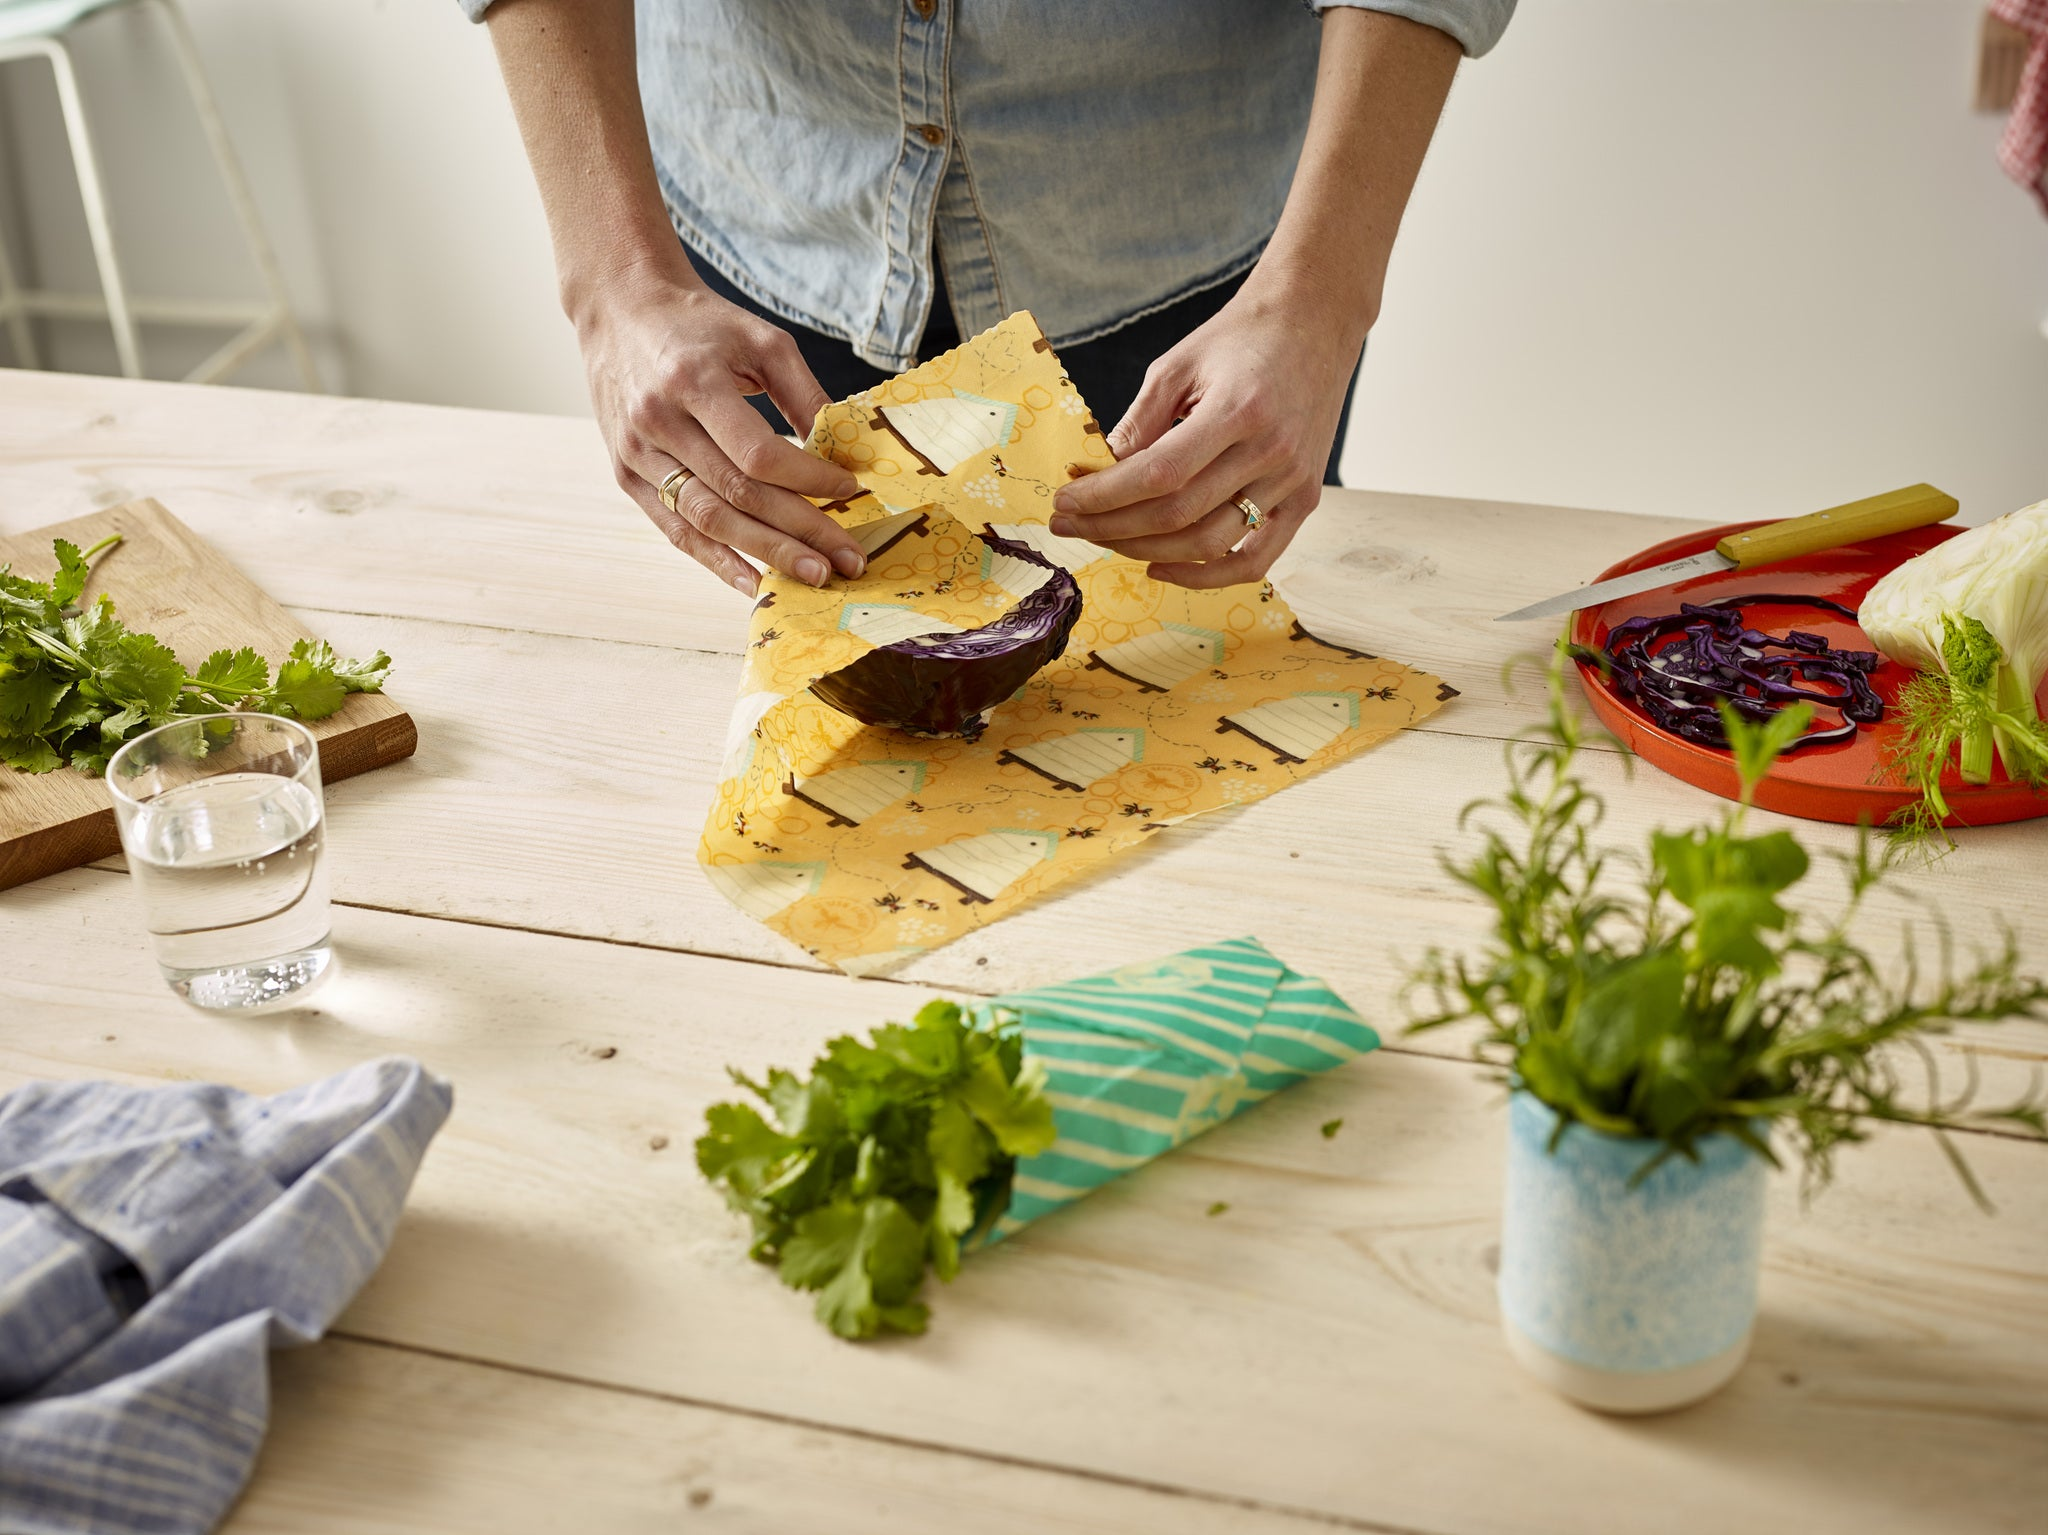 'Small Kitchen Pack' Beeswax Wraps - Bee Hive - The Weekly Shop | Plastic Free Online Shop